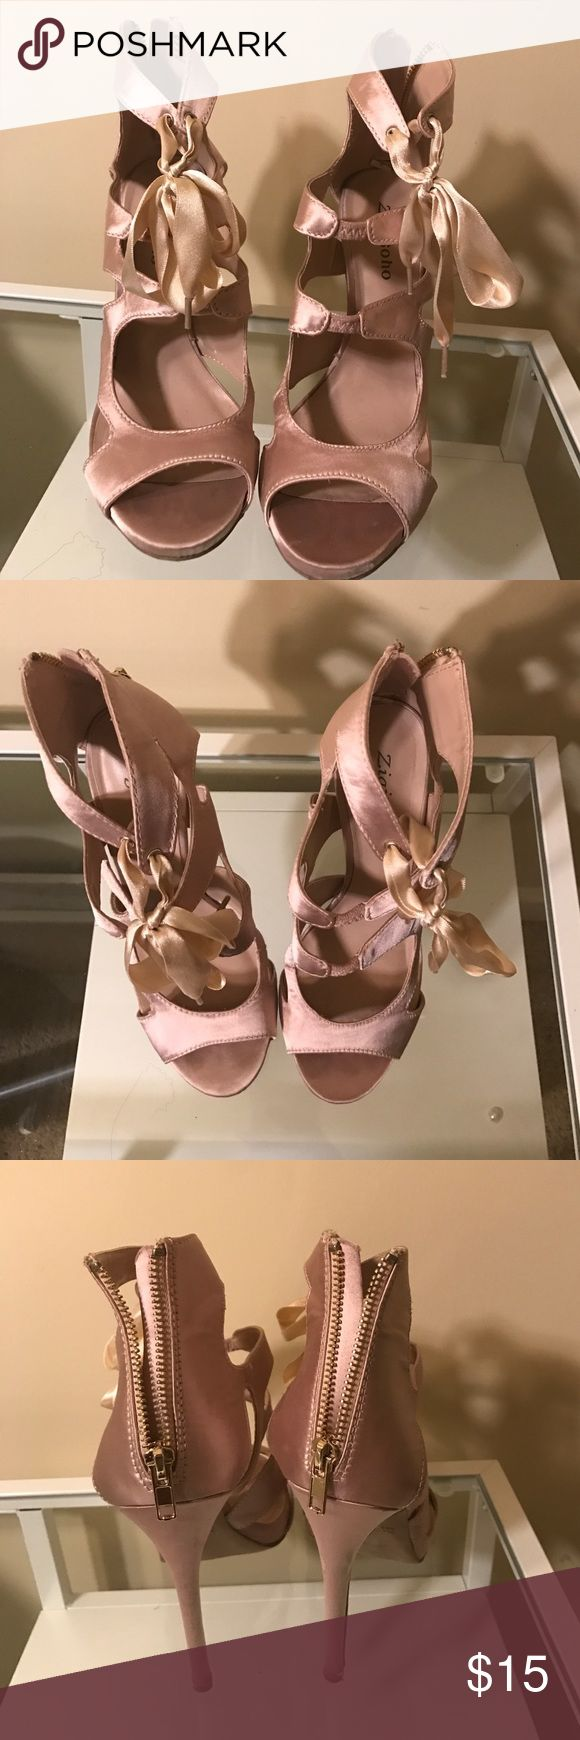 Zigi soho Champagne colored heels These beautifil champagne colored ballerina lace up heels with a zipper fastening in the back Zigi Soho Shoes Heels